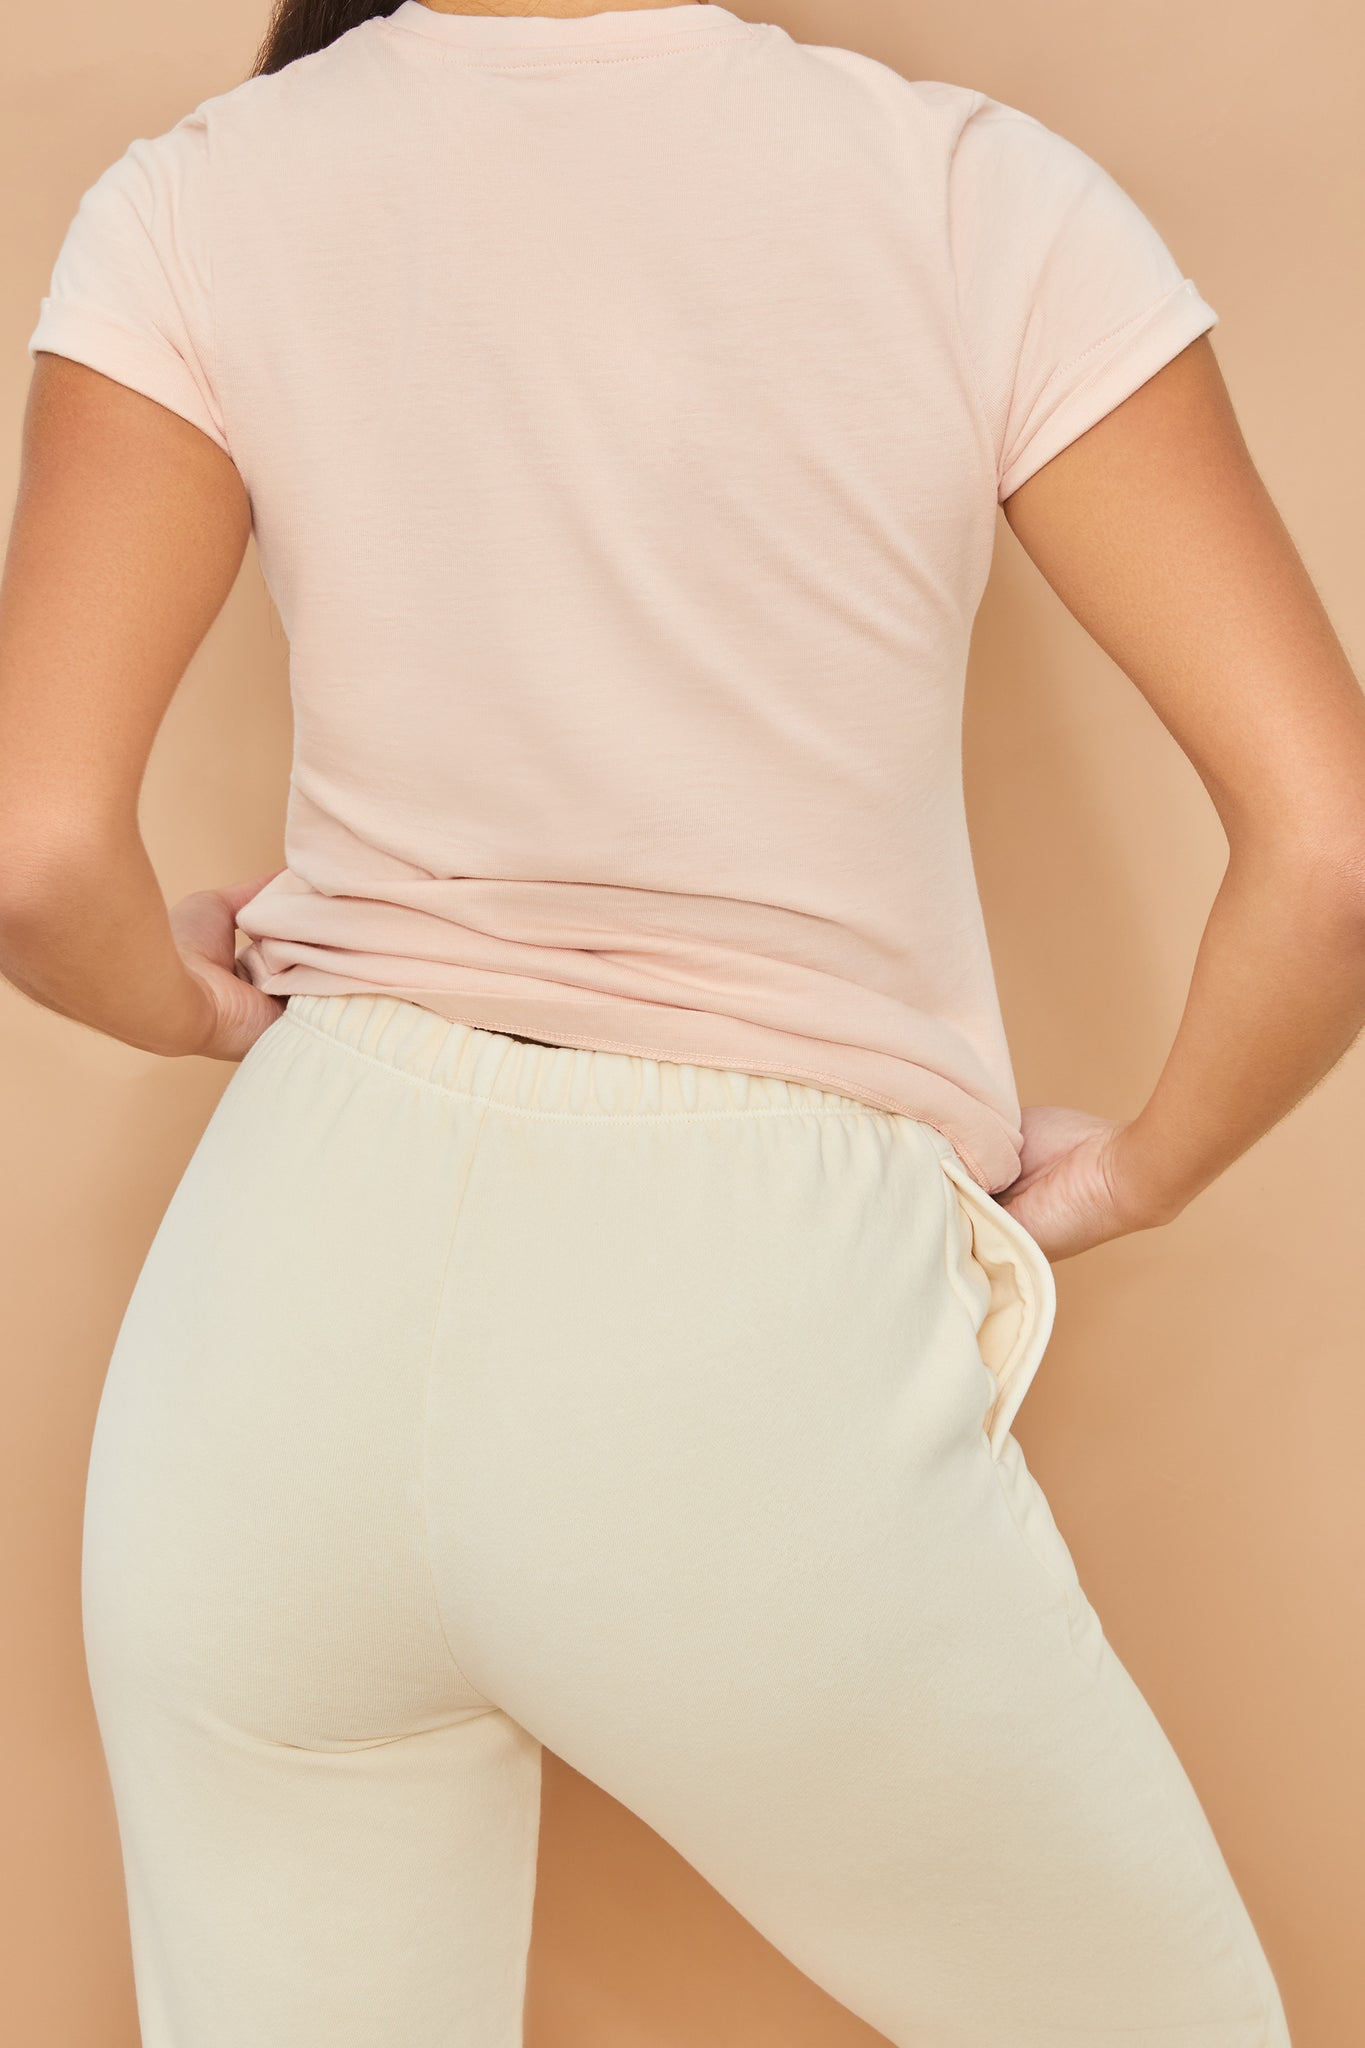 Team Sport - T-Shirt in Blush